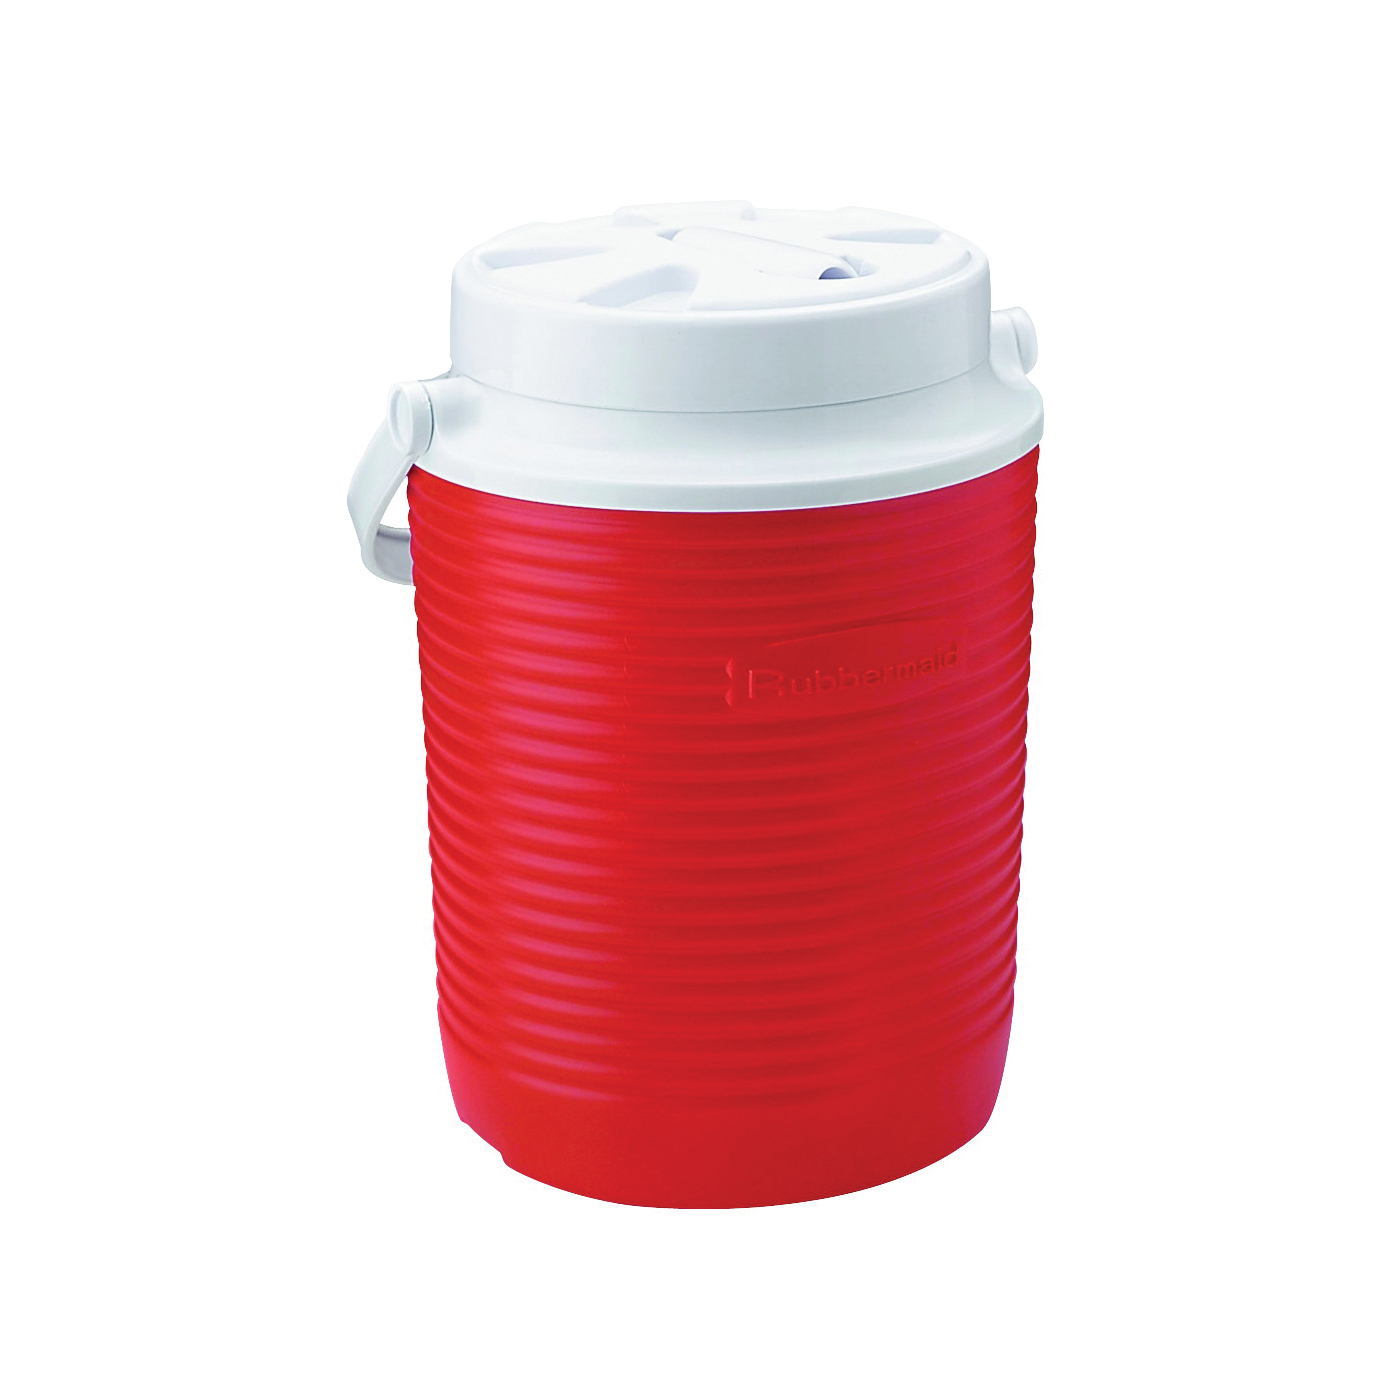 Picture of Rubbermaid Victory 1560-06-MODRD Jug, 1 gal Capacity, Plastic, Red